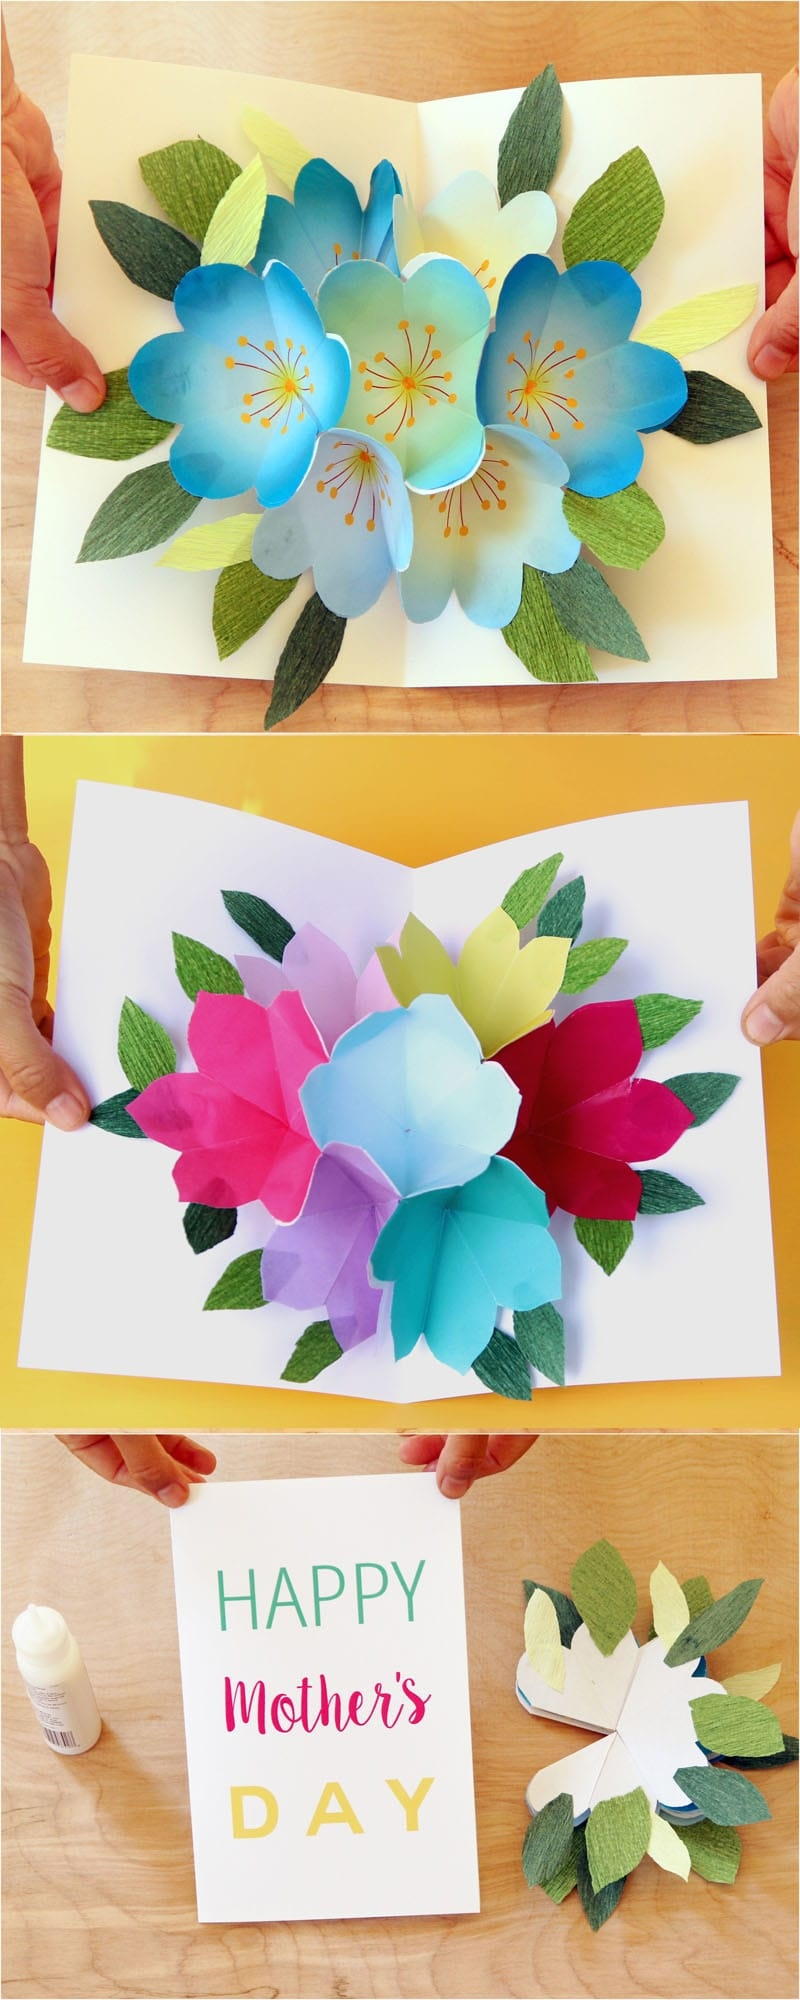 Pop Up Flowers Diy Printable Mother's Day Card - A Piece Of Rainbow - Free Printable Pop Up Card Templates